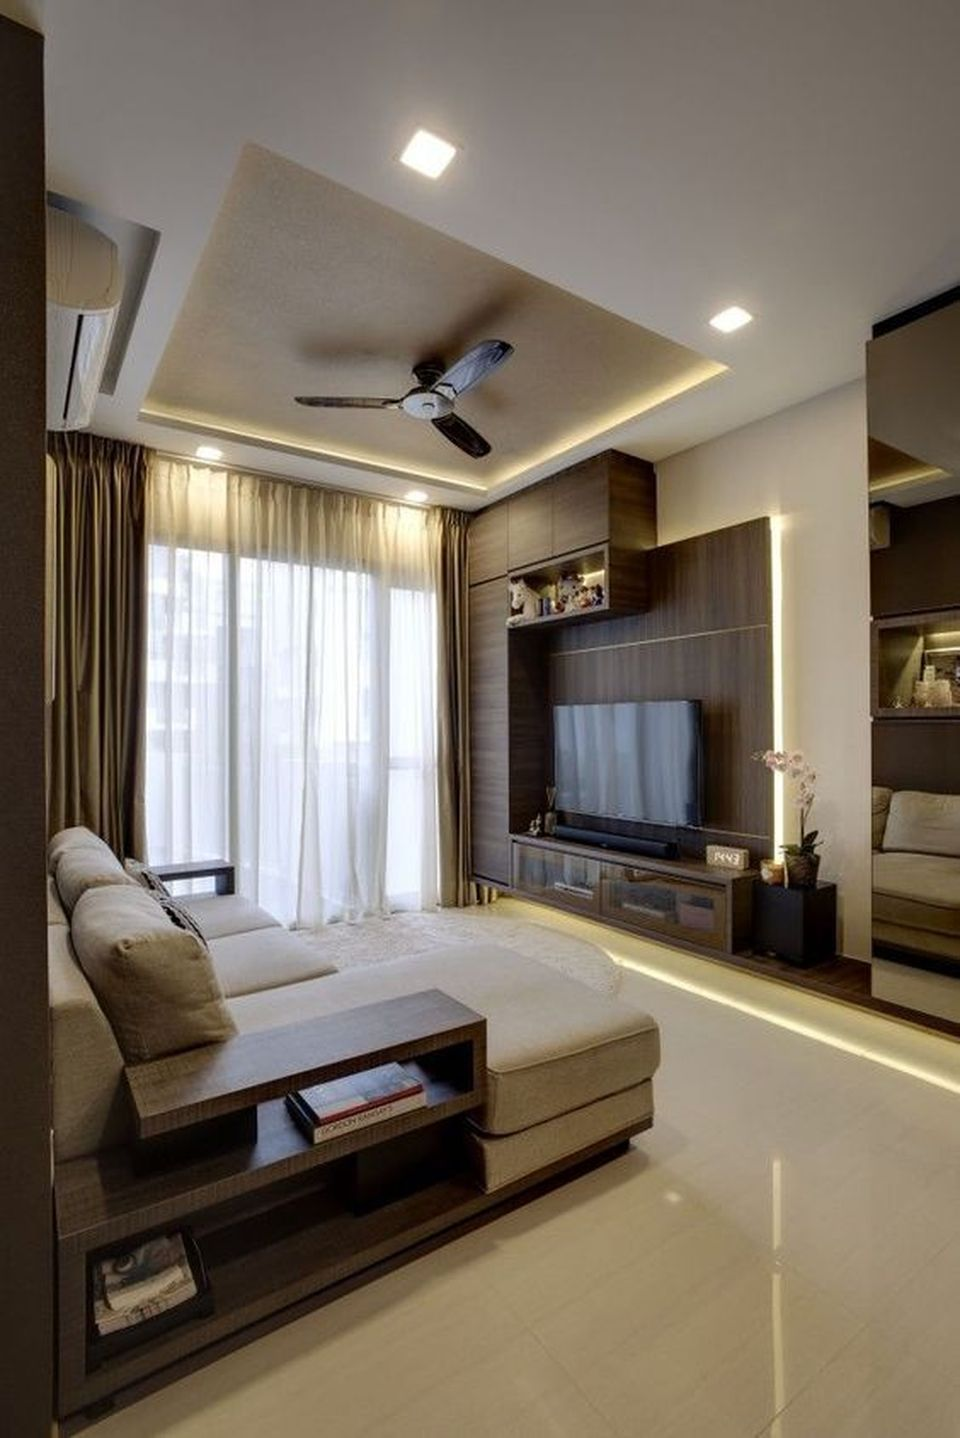 Contemporary Ceiling Designs For Living Room: 70 Modern False Ceilings With Cove Lighting Design For